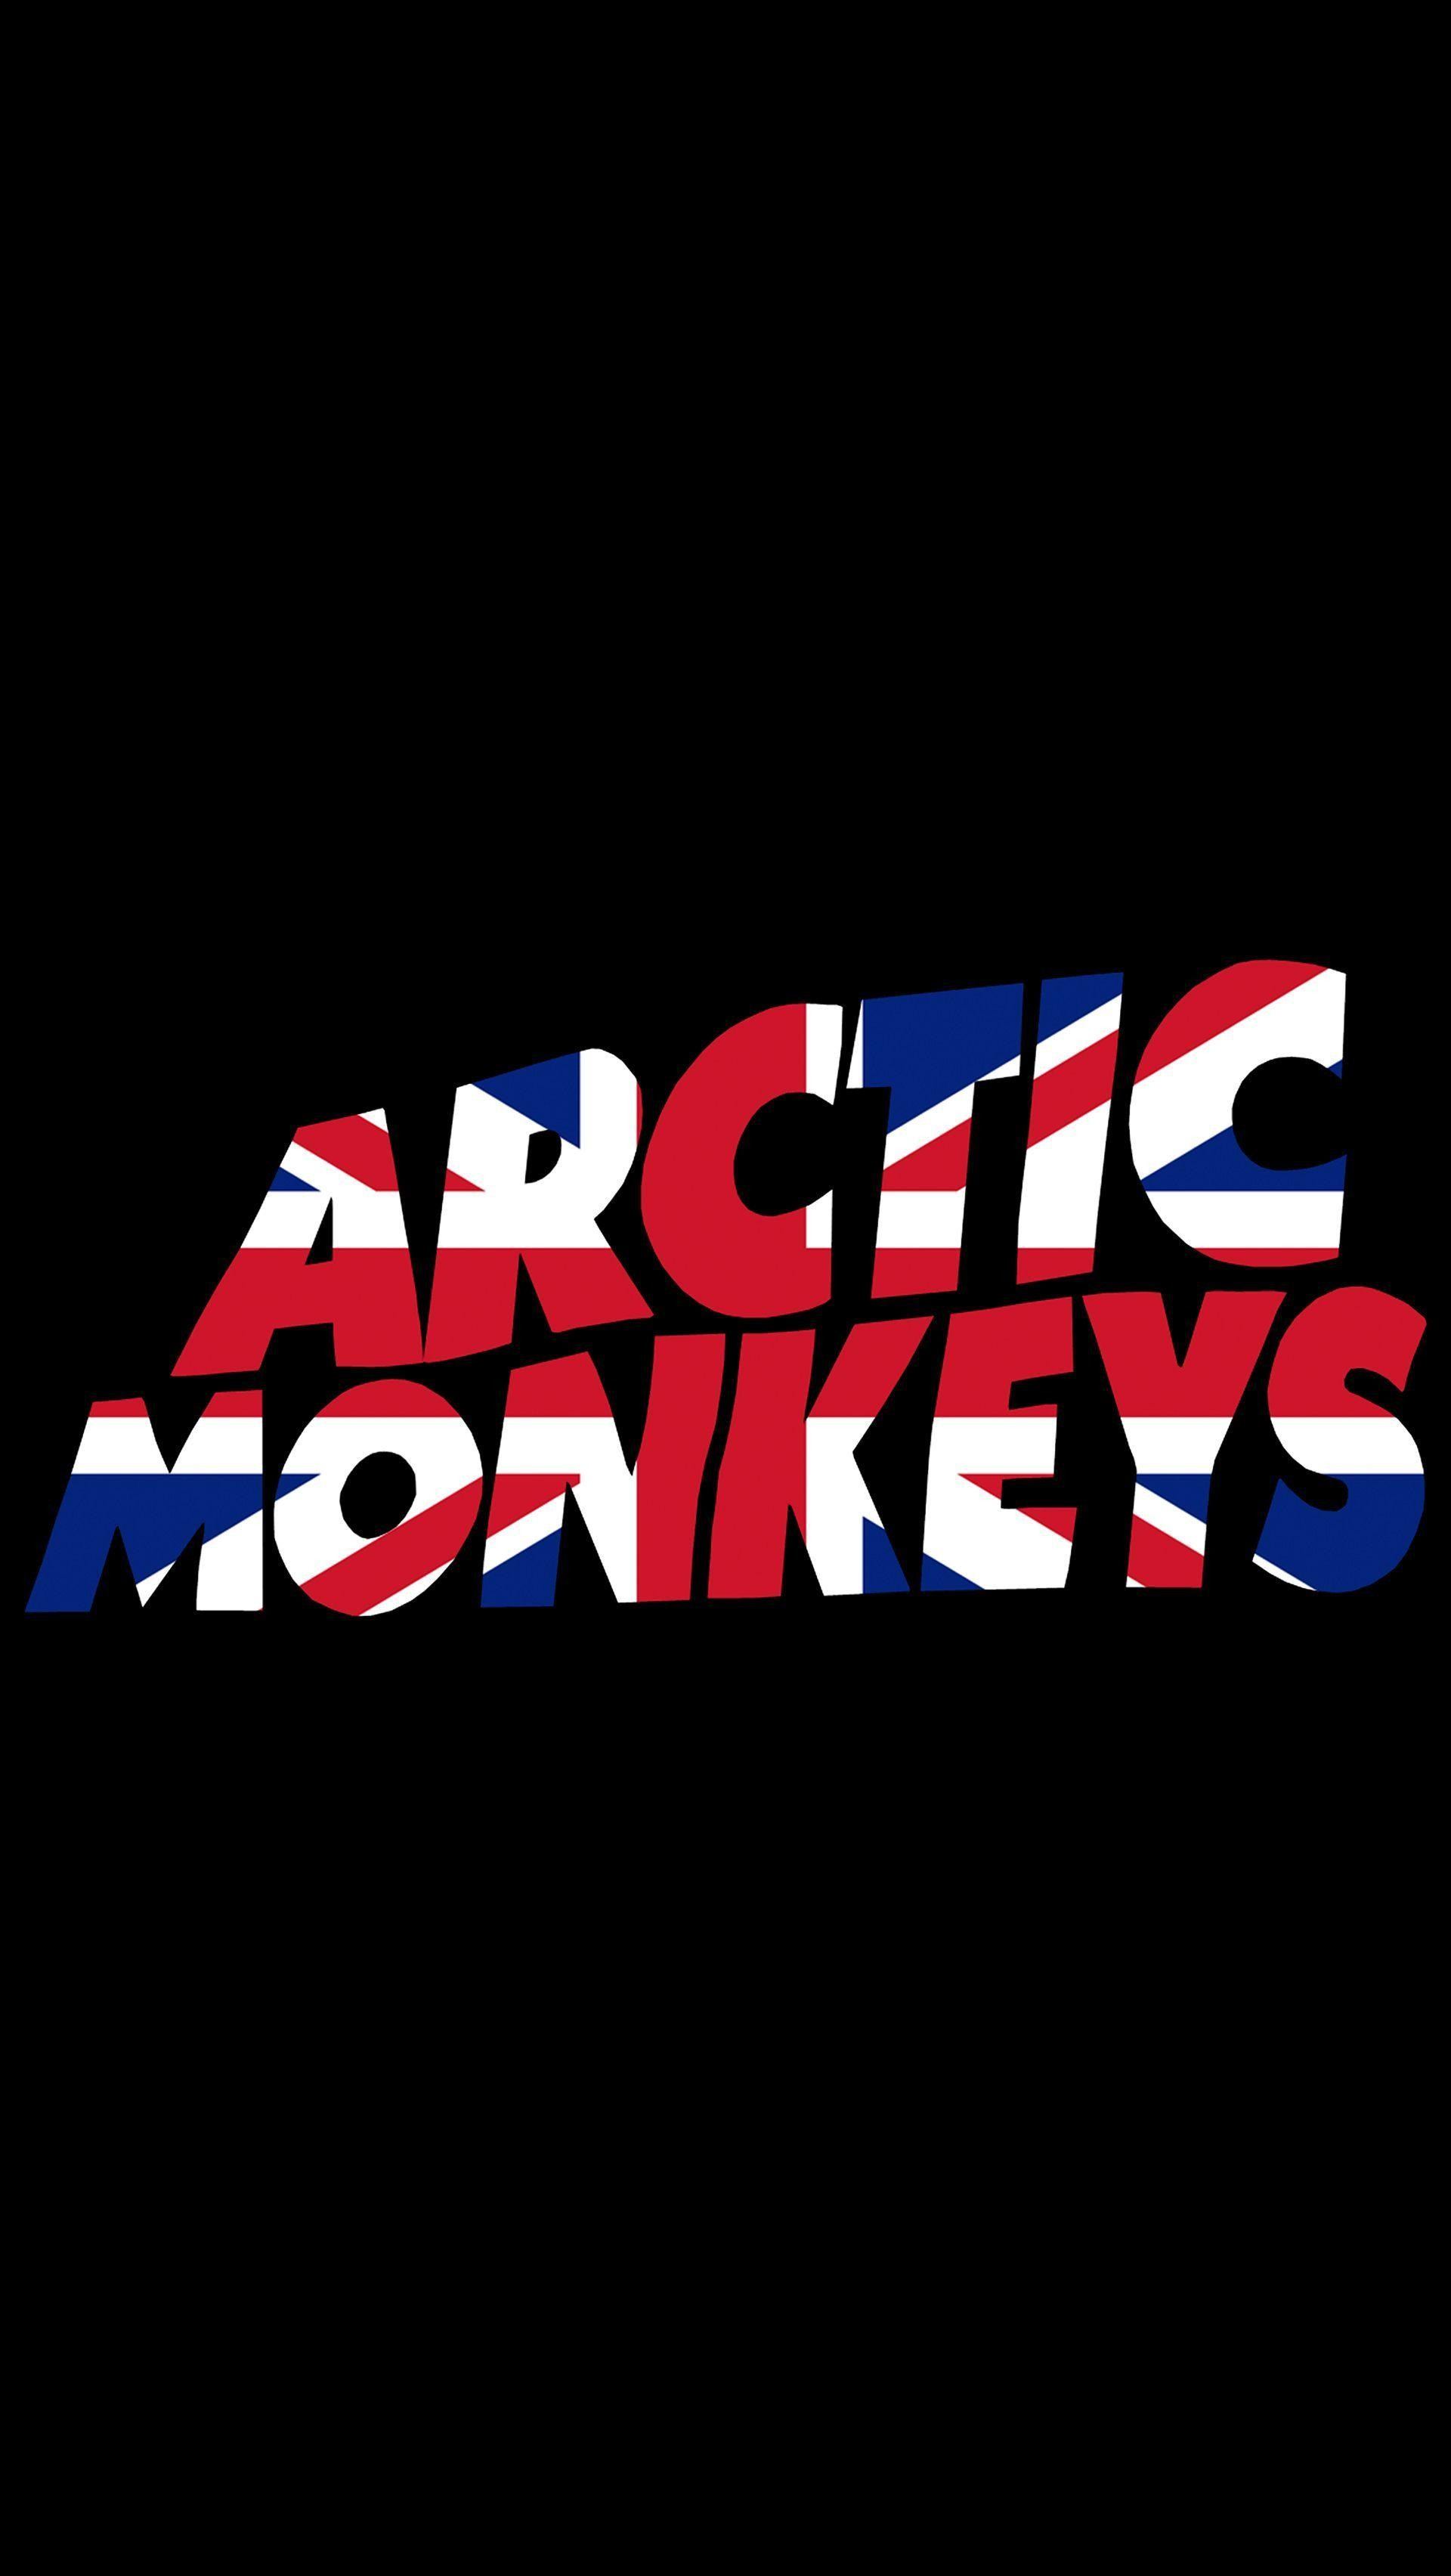 Horror Hd Wallpapers For Laptop Arctic Monkeys Iphone Wallpaper 74 Images